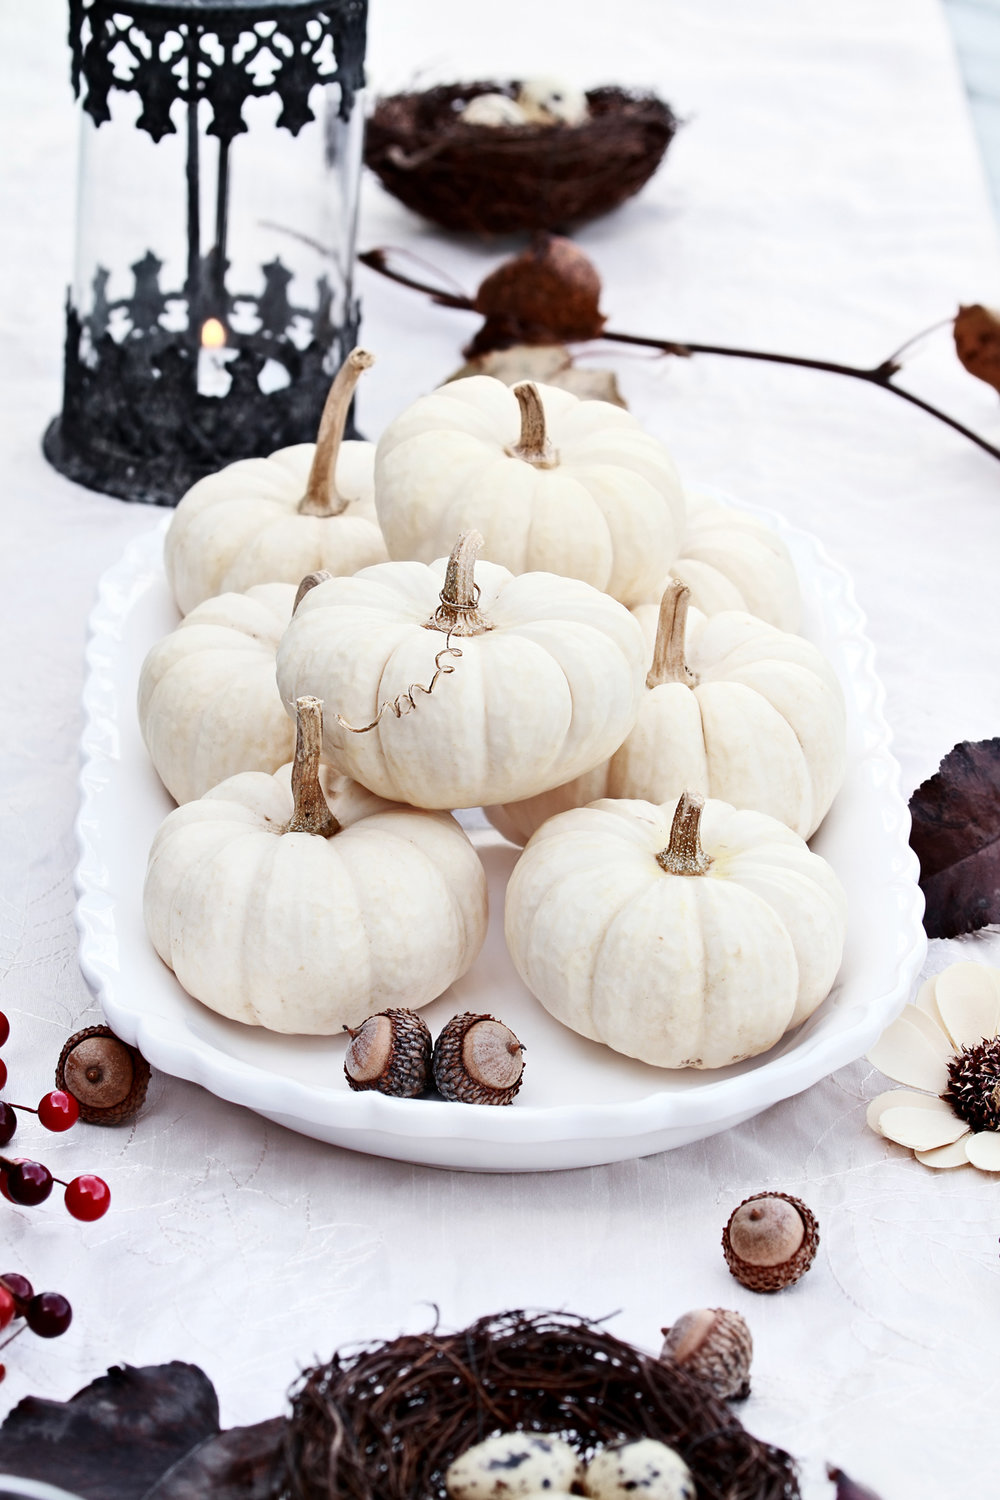 White mini pumpkins - charming!